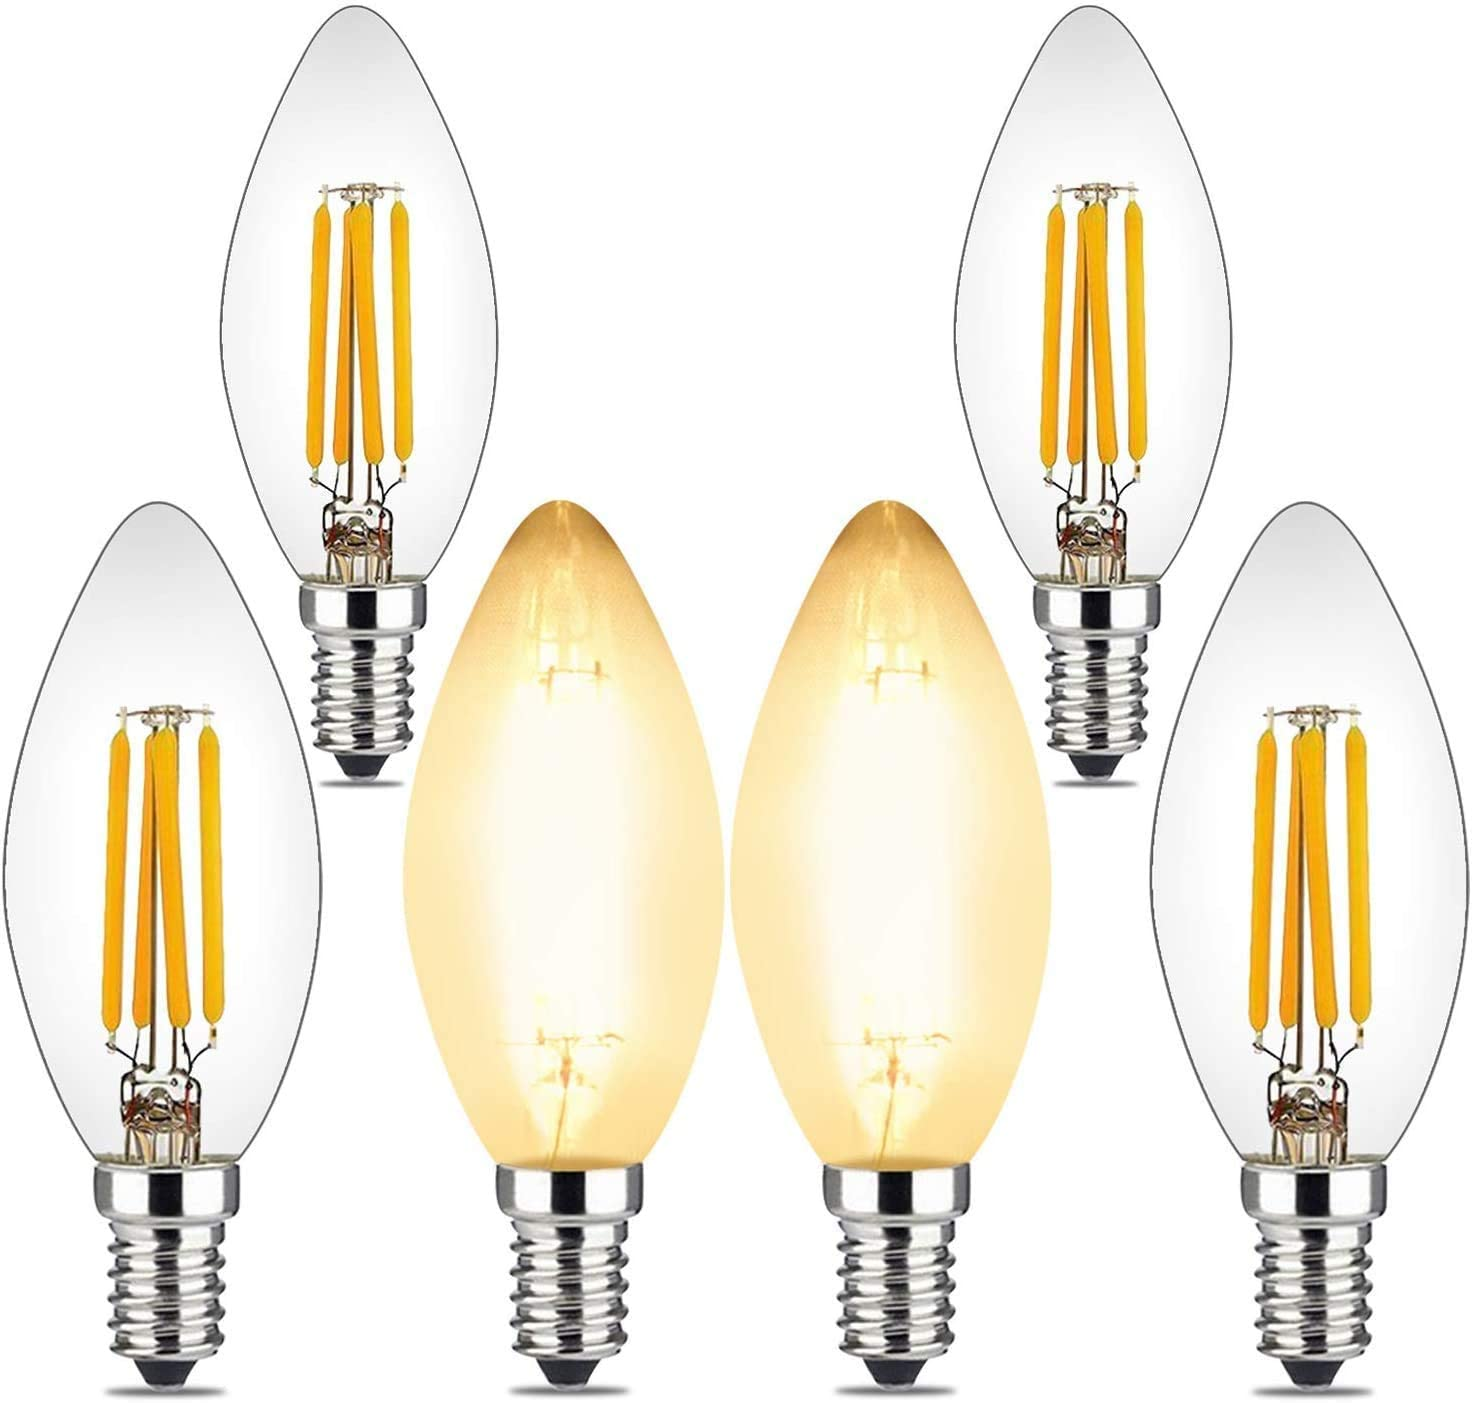 4W Candelabra Led Bulbs Dimmable, 40 Watt Equivalent, E12 Base, 2700K Warm Glow, C35 B10/B11 Filament Led Candle Light Bulbs for Foyer Chandeliers, Ceiling Fans and Other Wall Fixtures, 6Pack